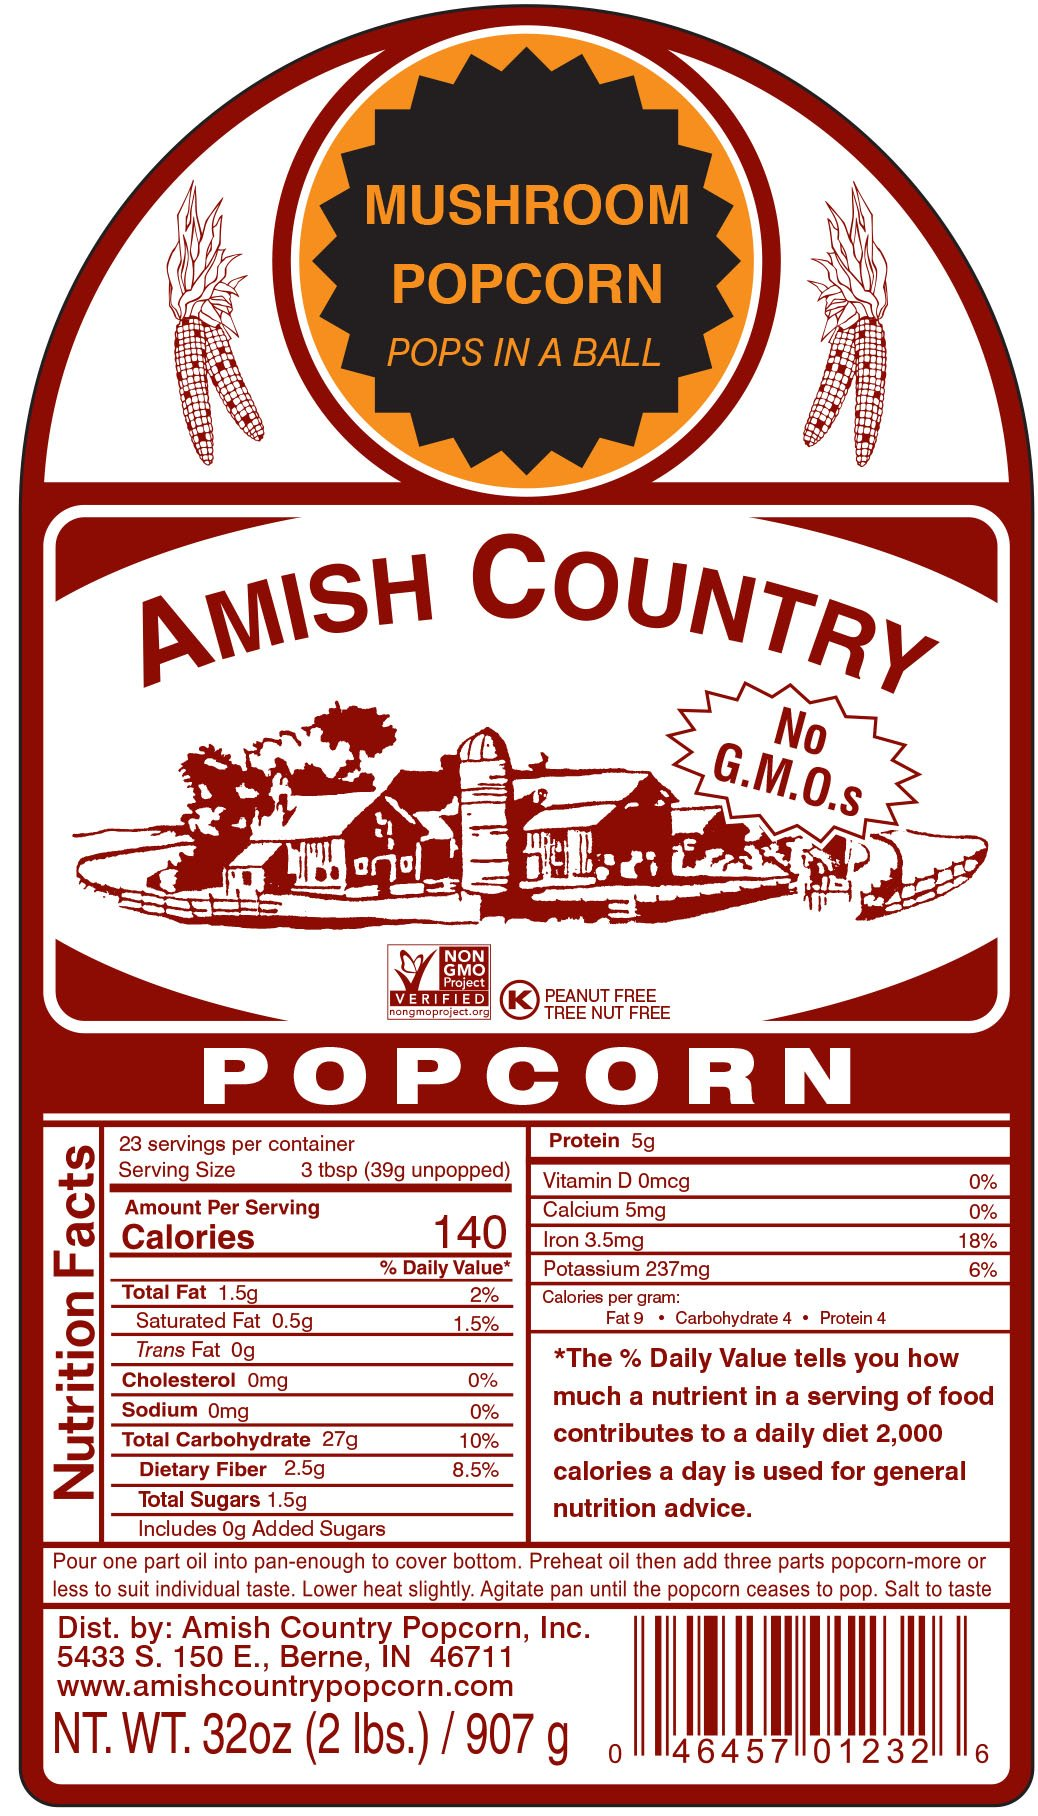 Amish Country Popcorn - Mushroom Popcorn (6 Pound Bag) - Old Fashioned, Non GMO, Gluten Free, Microwaveable, Stovetop and Air Popper Friendly - with Recipe Guide by Amish Country Popcorn (Image #7)